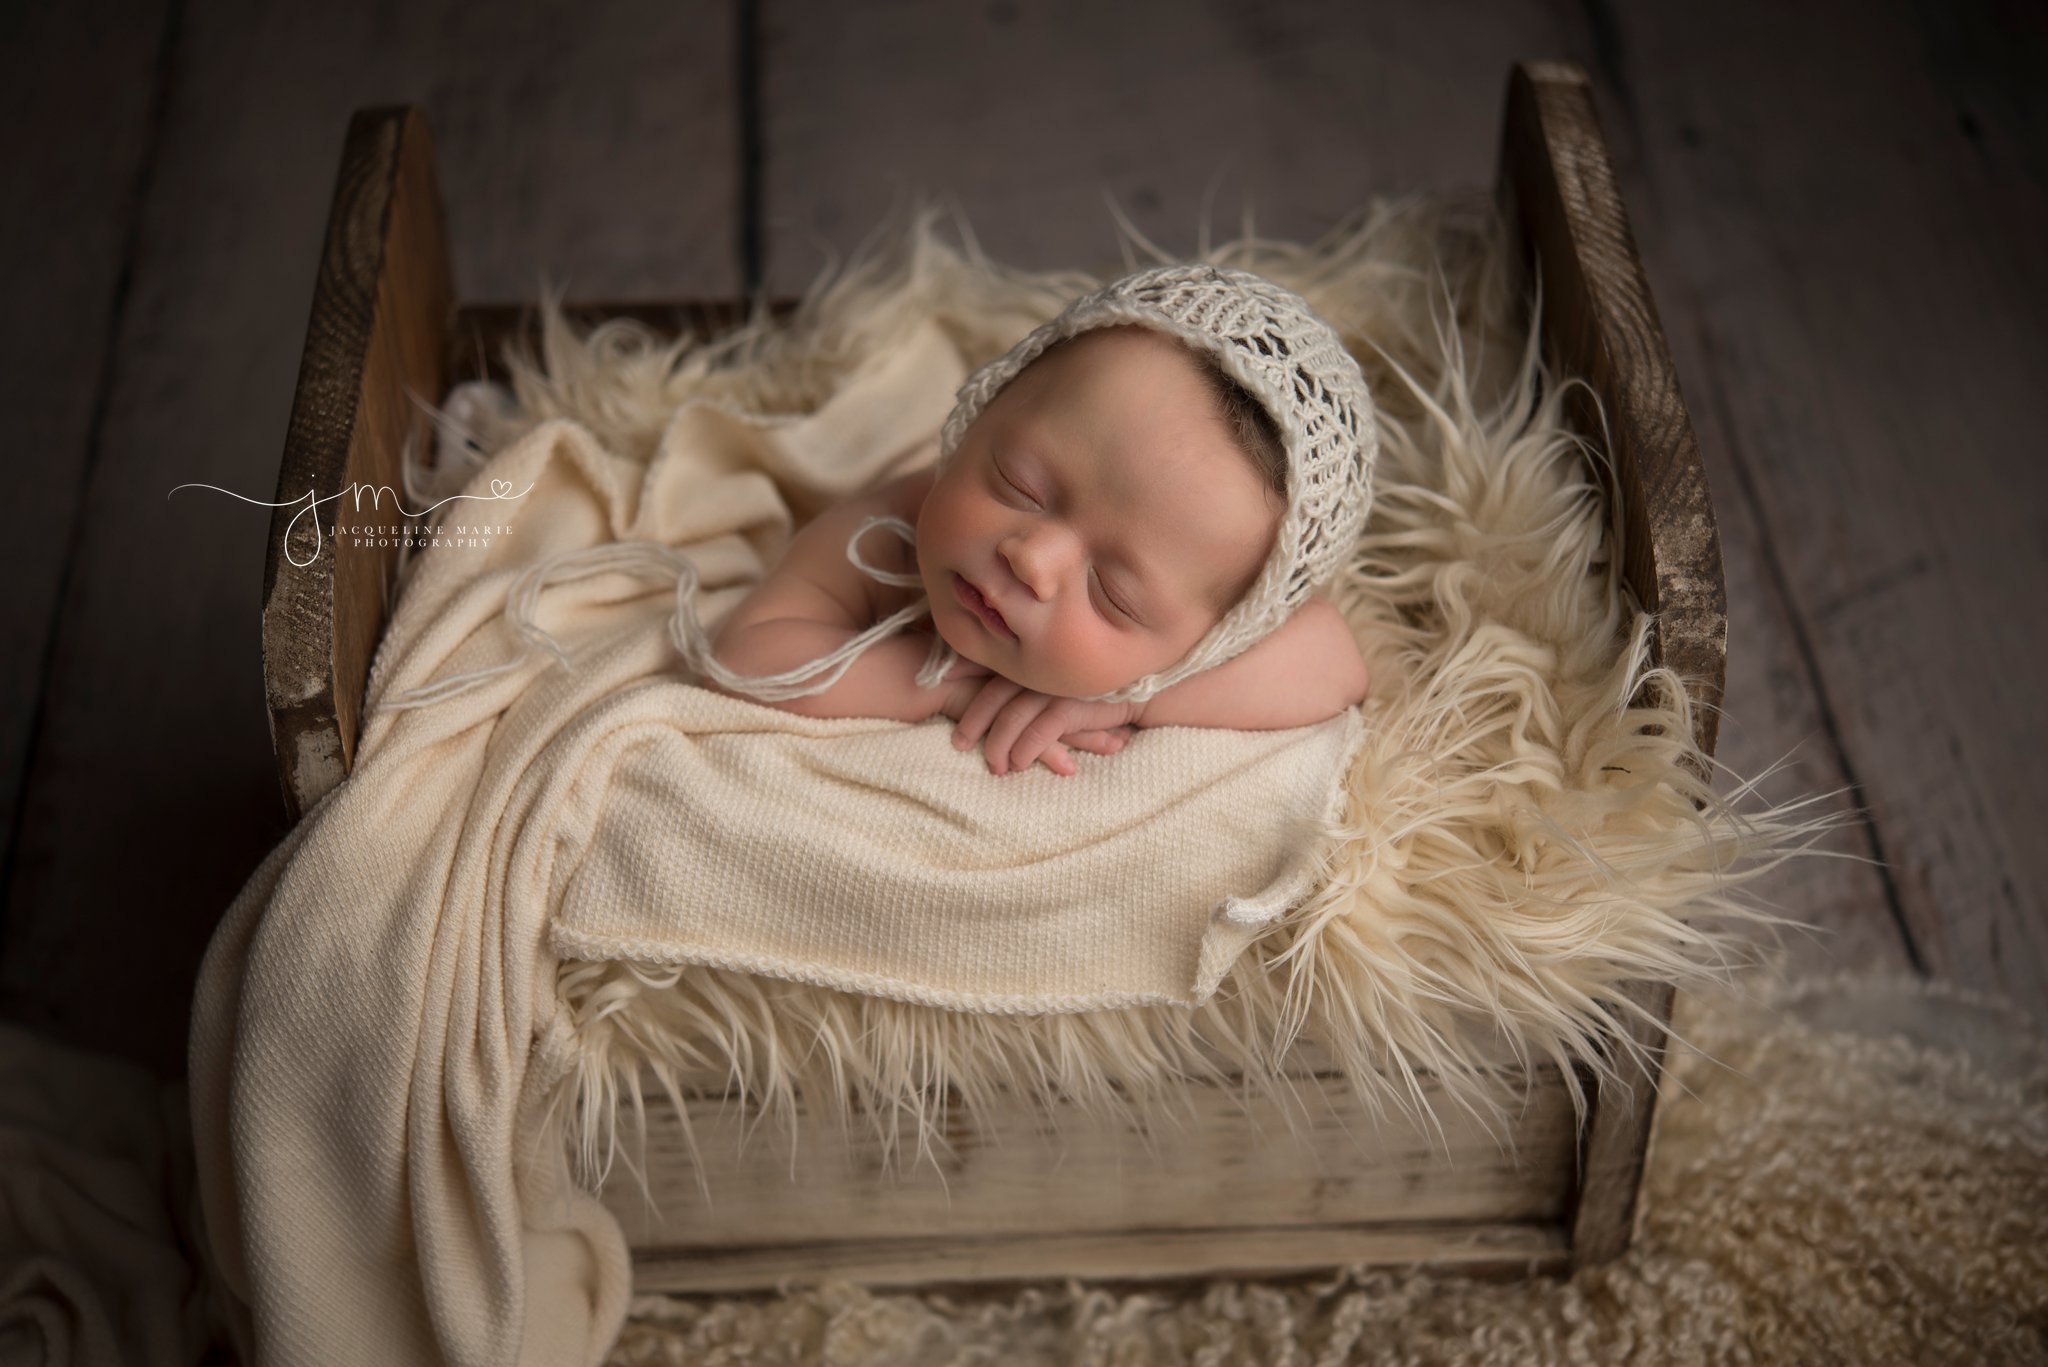 columbus ohio newborn photographer poses newborn baby in wood bed for newborn mentoring session with Photograpy by axis design in toccoa georgia